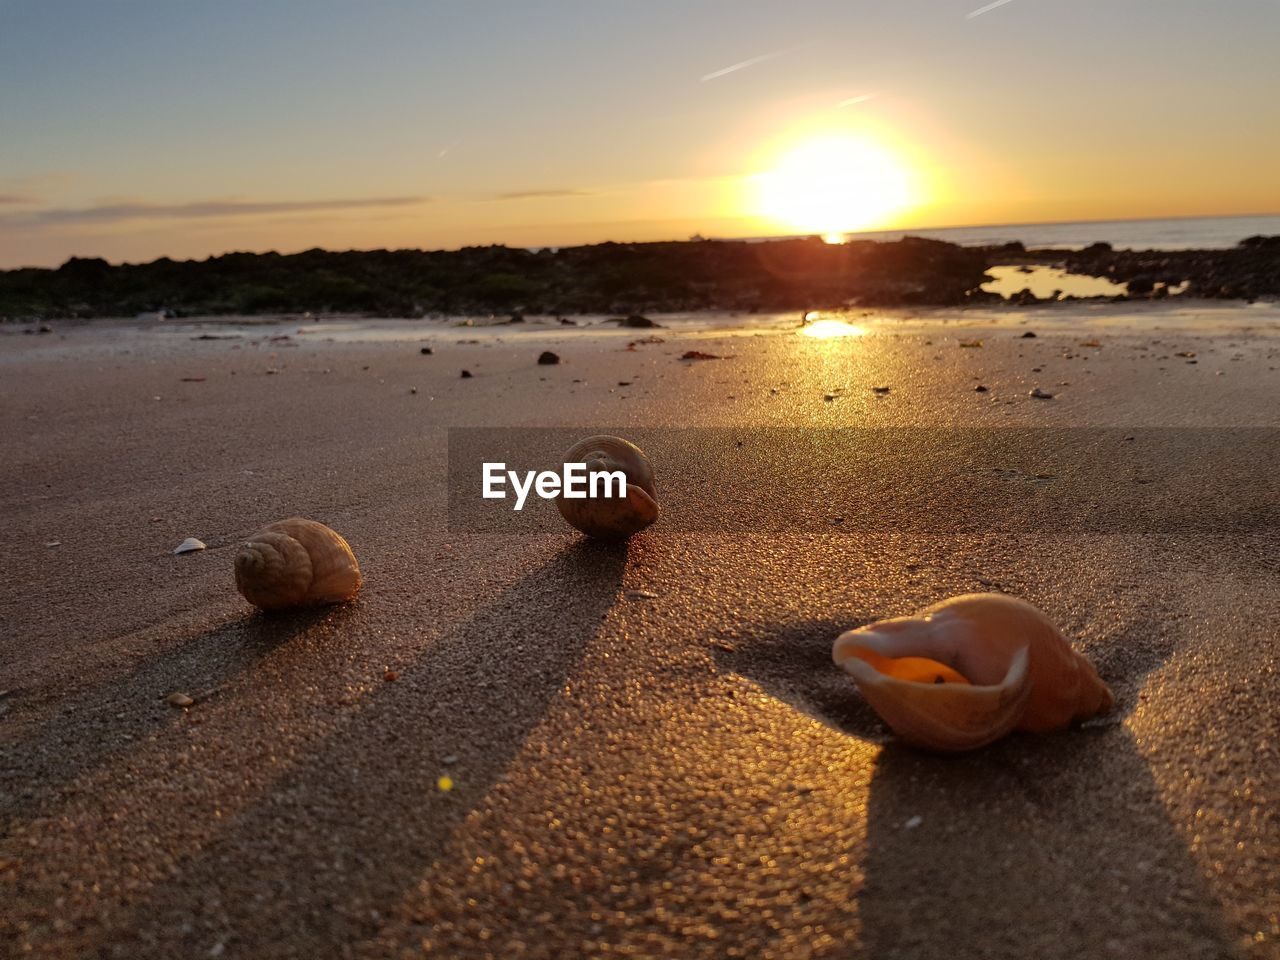 beach, sand, sunset, shore, nature, sea, sky, outdoors, beauty in nature, no people, seashell, sunlight, scenics, tranquil scene, pebble, tranquility, water, close-up, animal themes, day